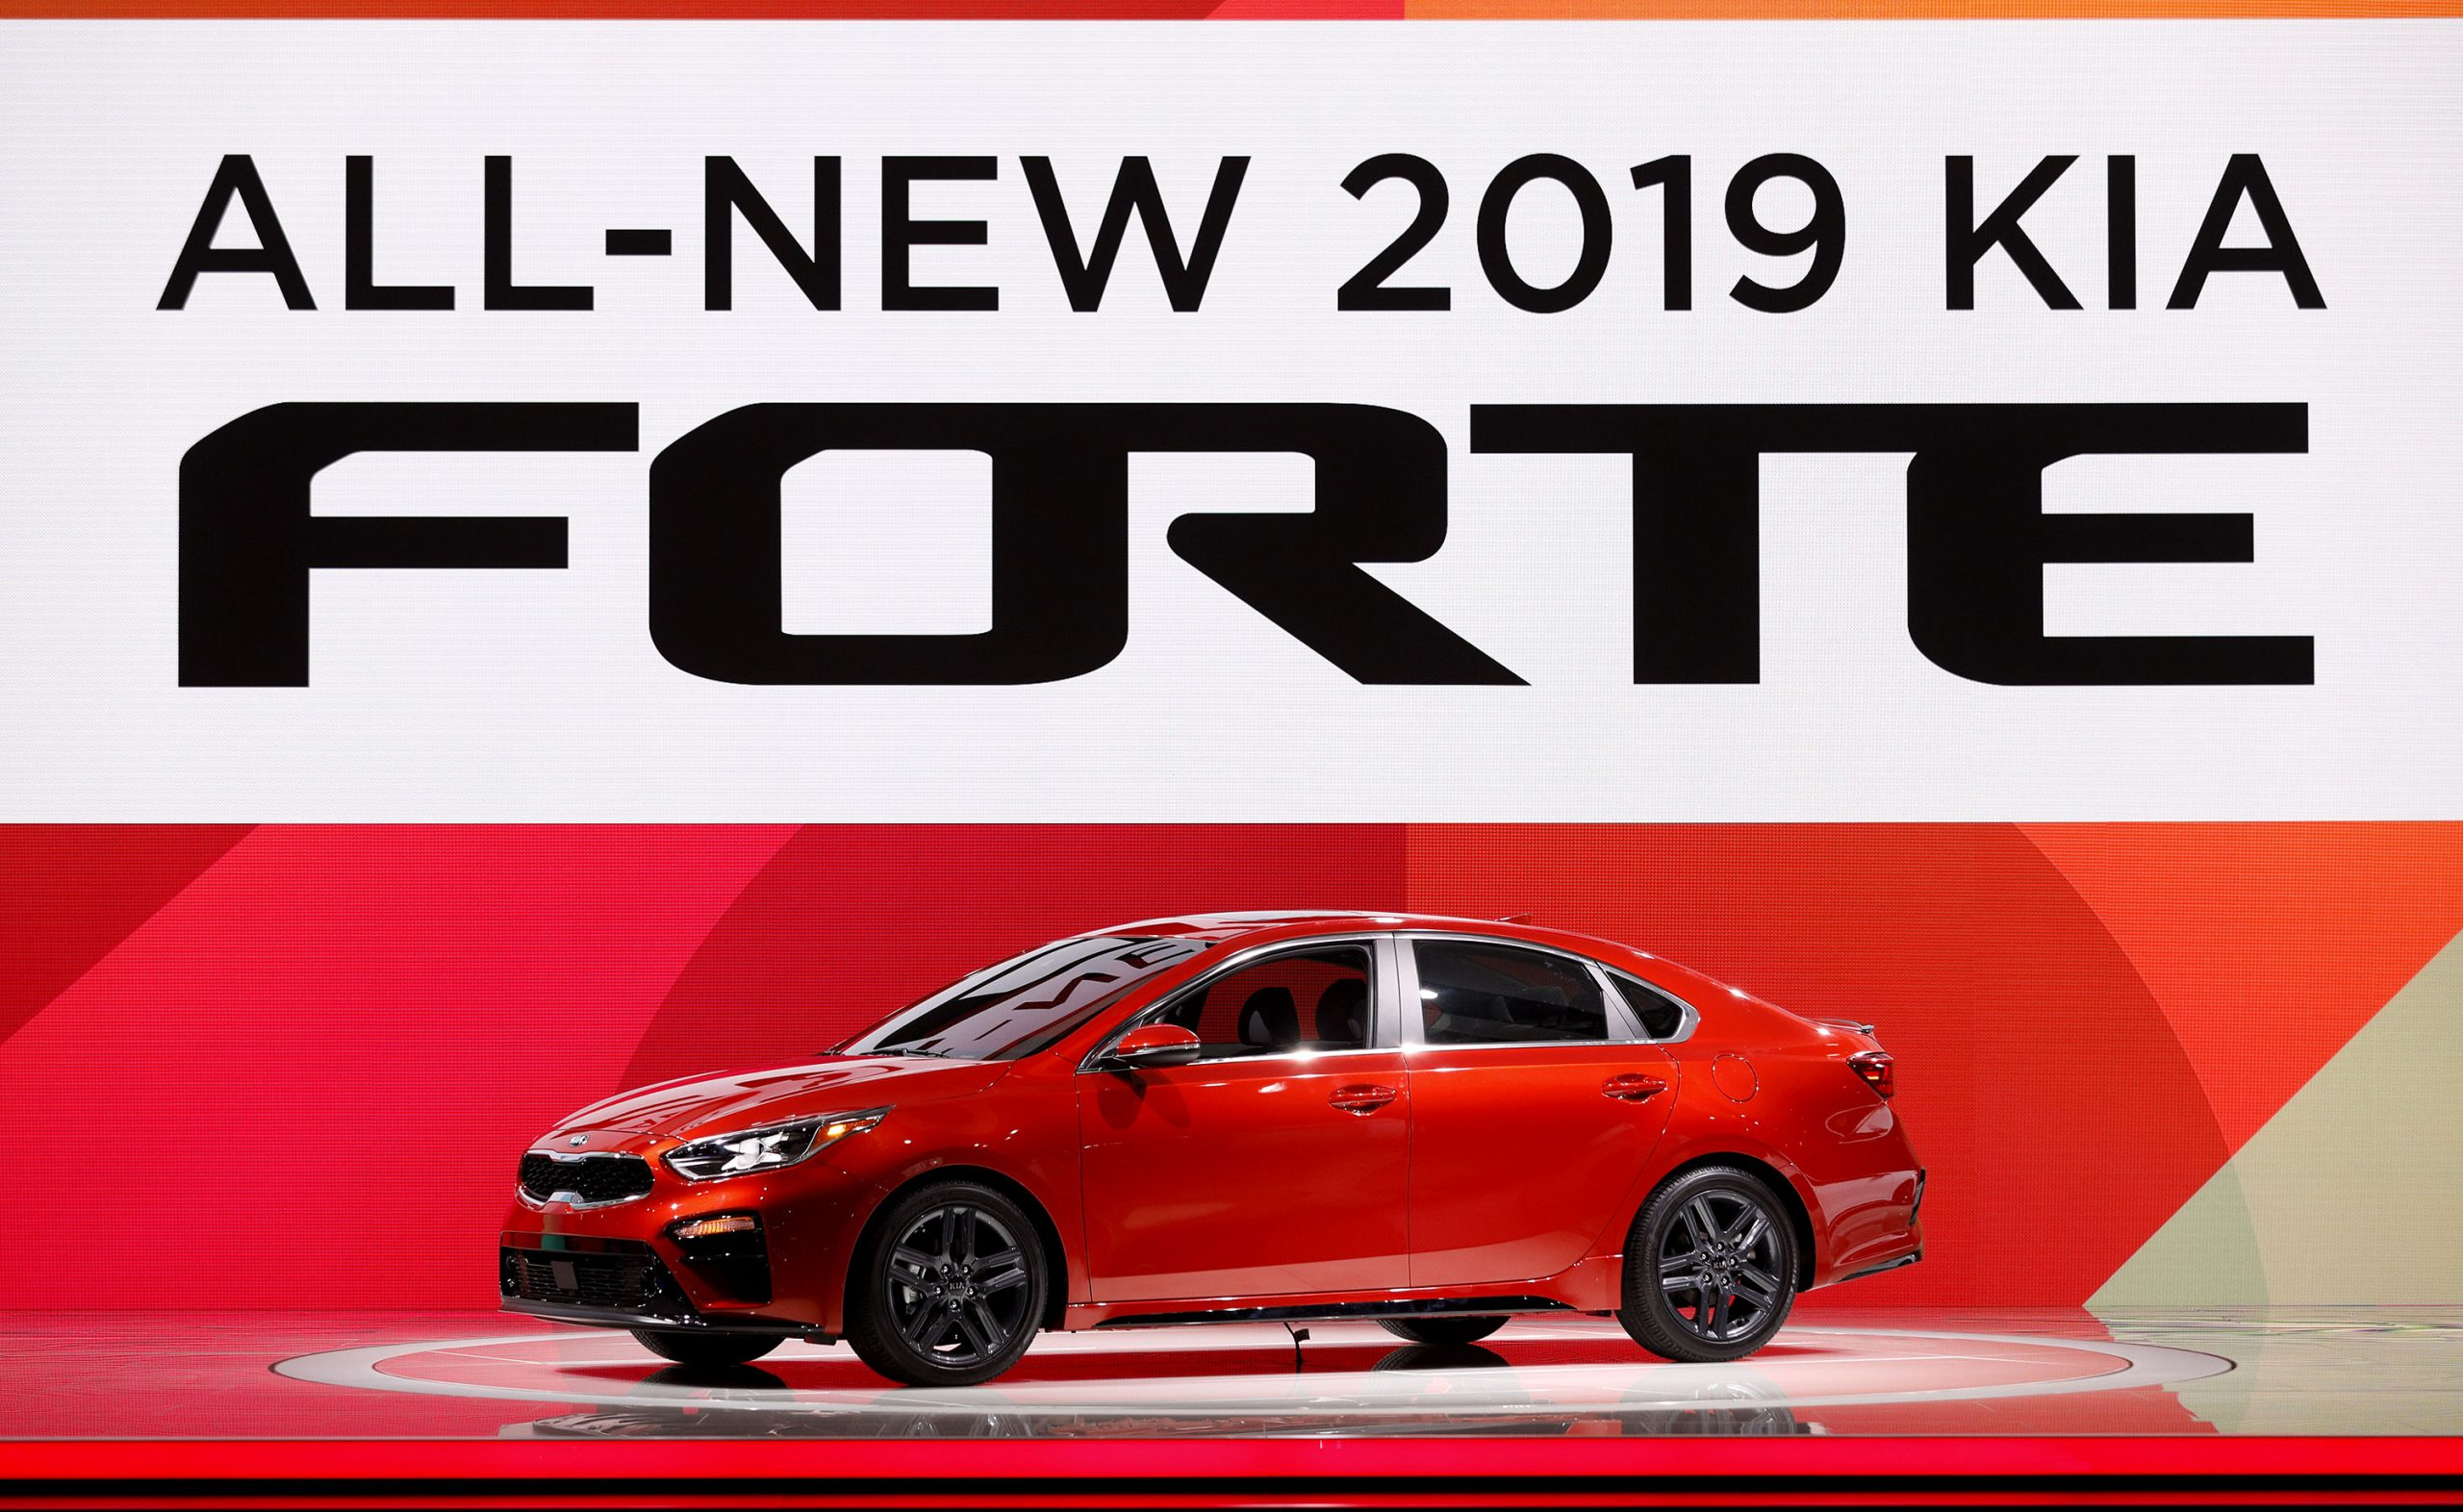 A red 2019 Kia Forte on stage at an auto show shot from the 3/4 angle